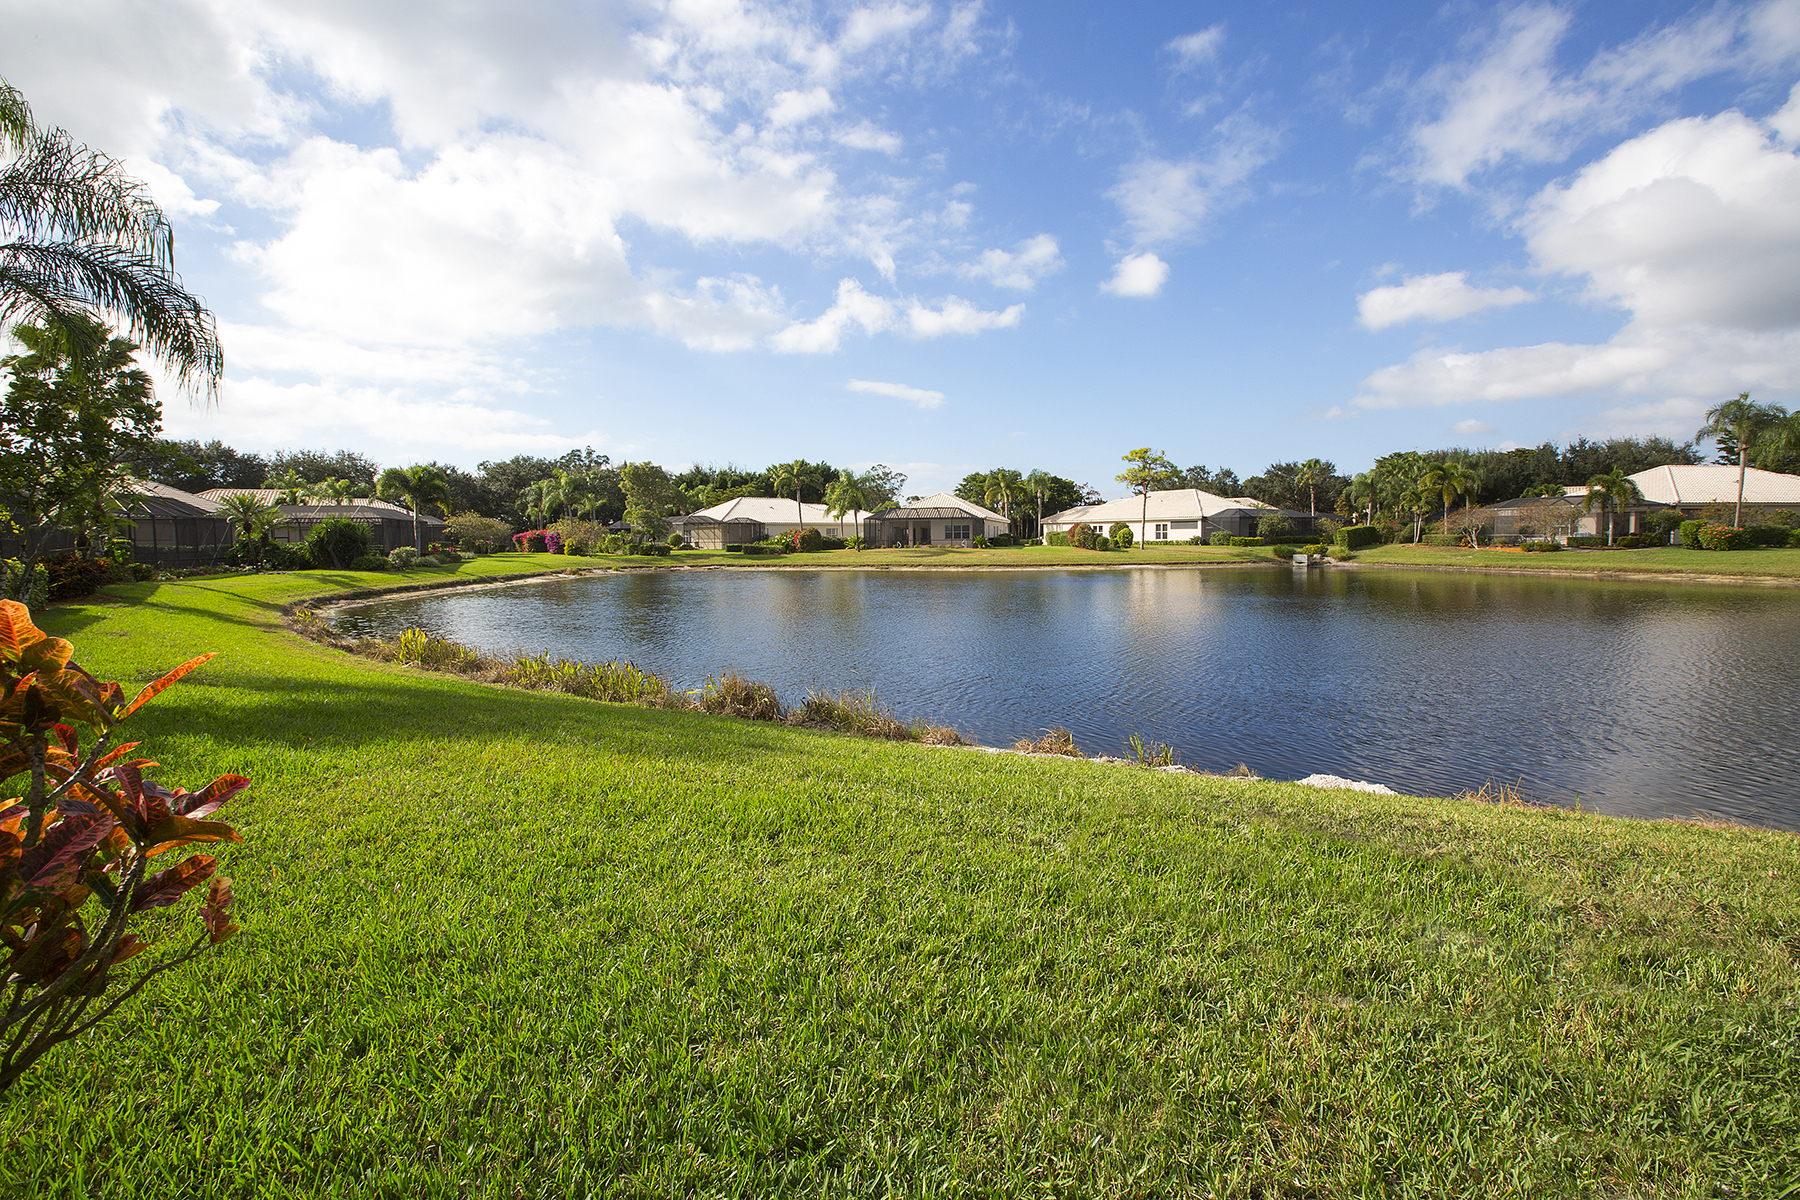 Single Family Home for Sale at PELICAN LANDING - CAPRI 24792 Hollybrier Ln, Bonita Springs, Florida 34134 United States